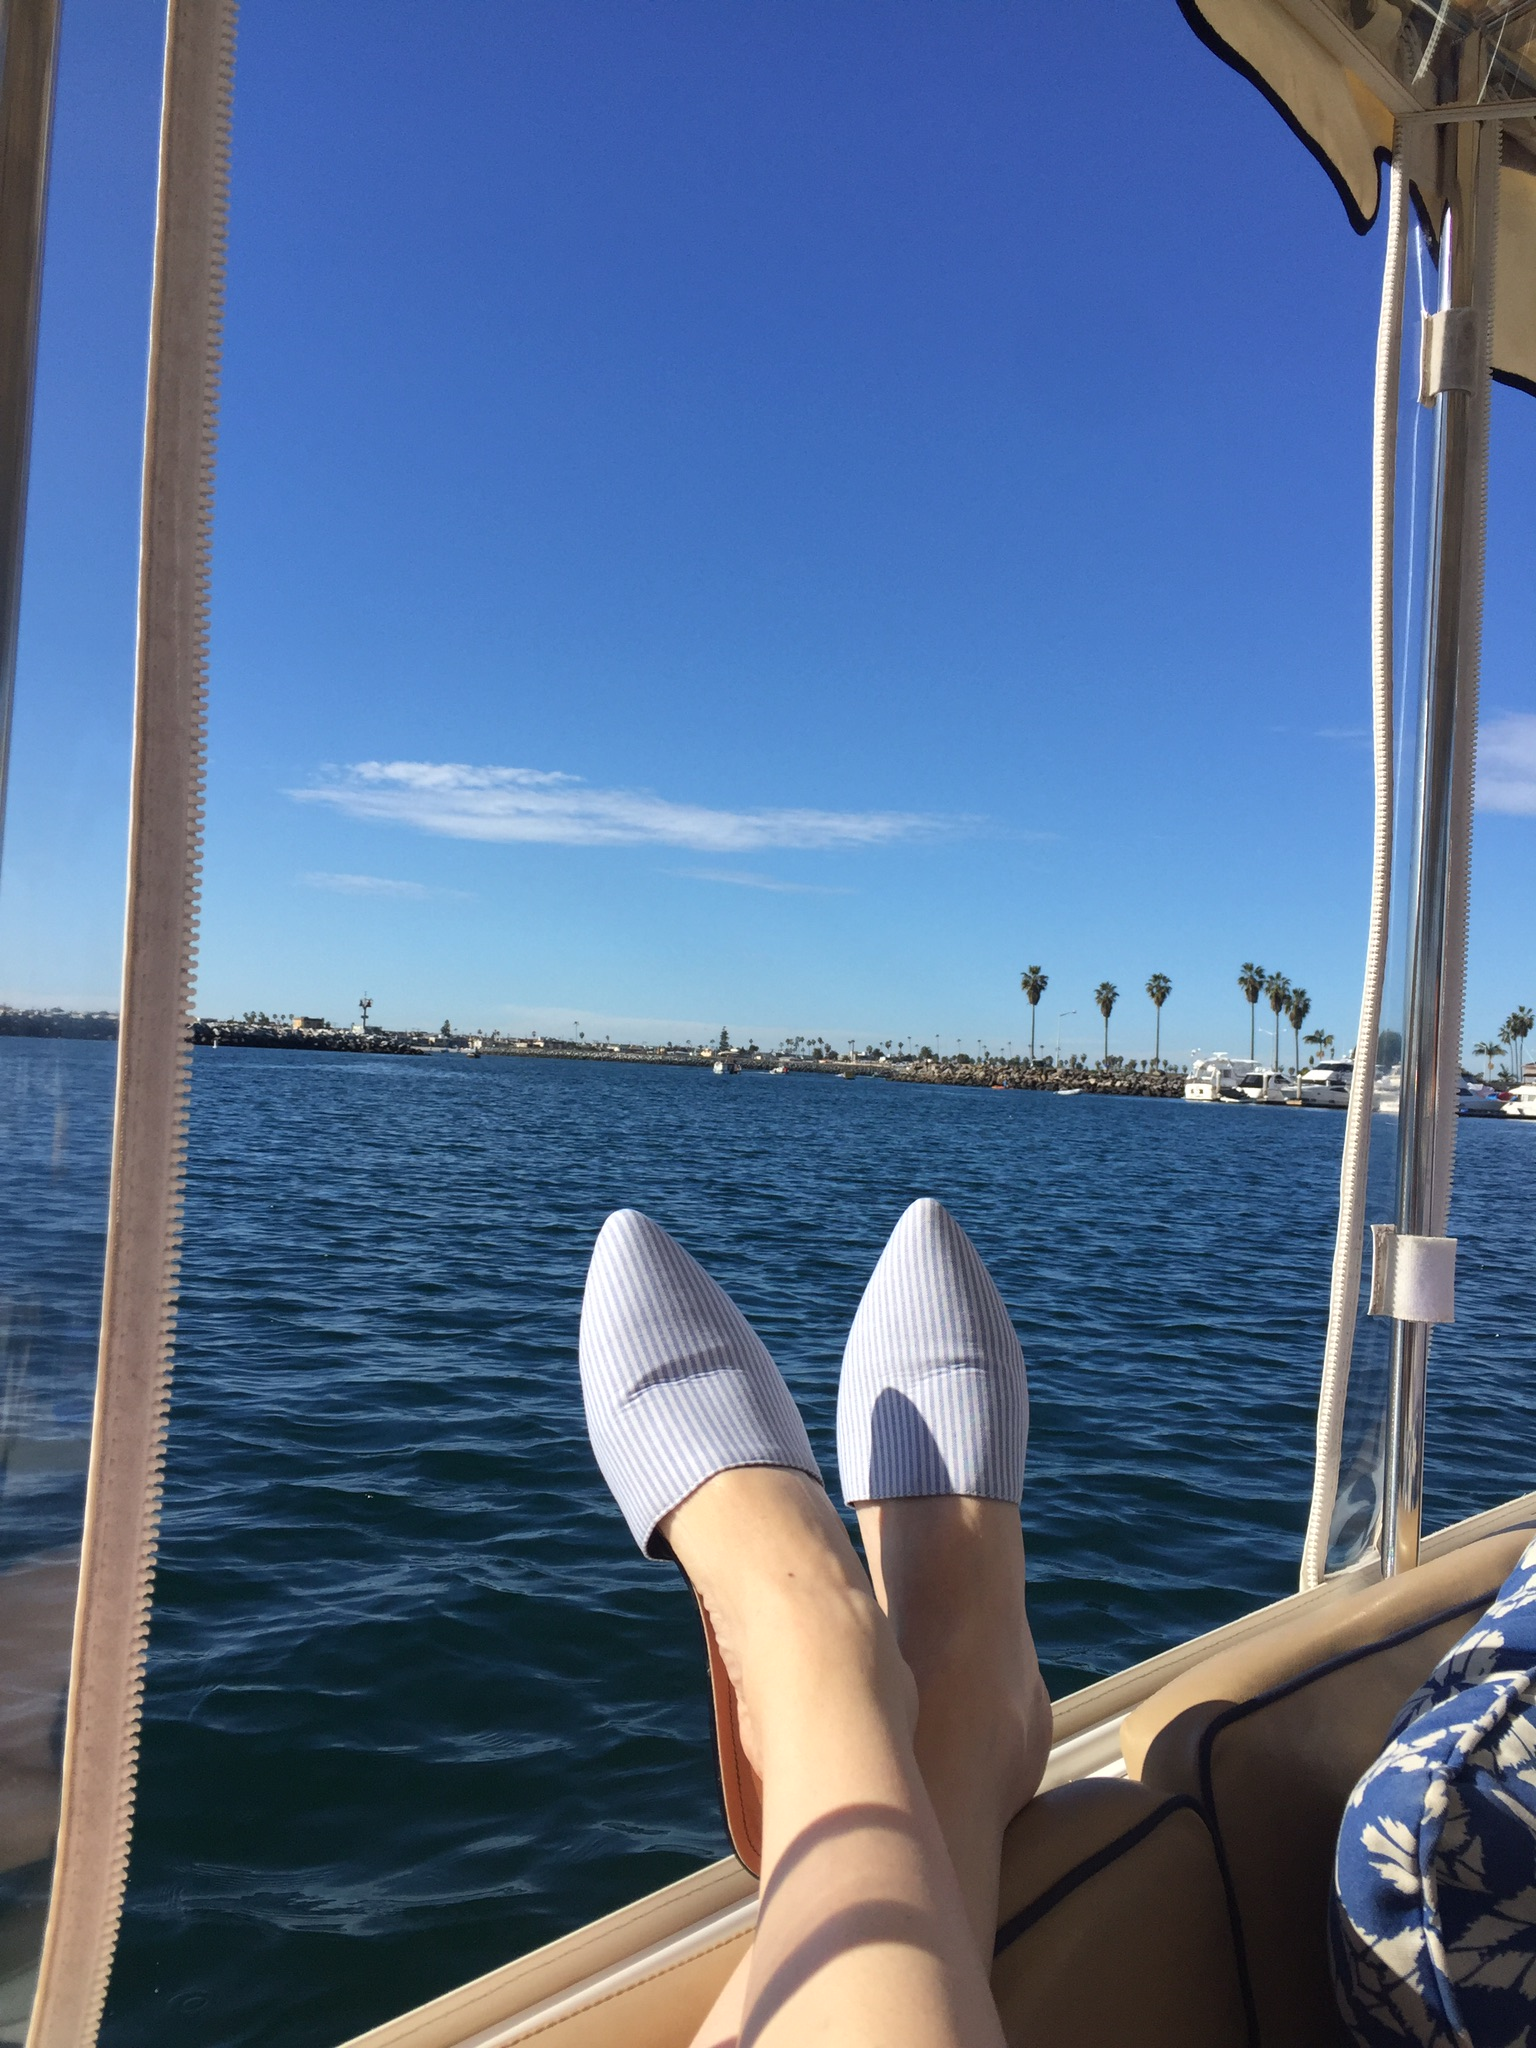 On our electric boat from Duffy Boat Rental - cruising Mission Bay